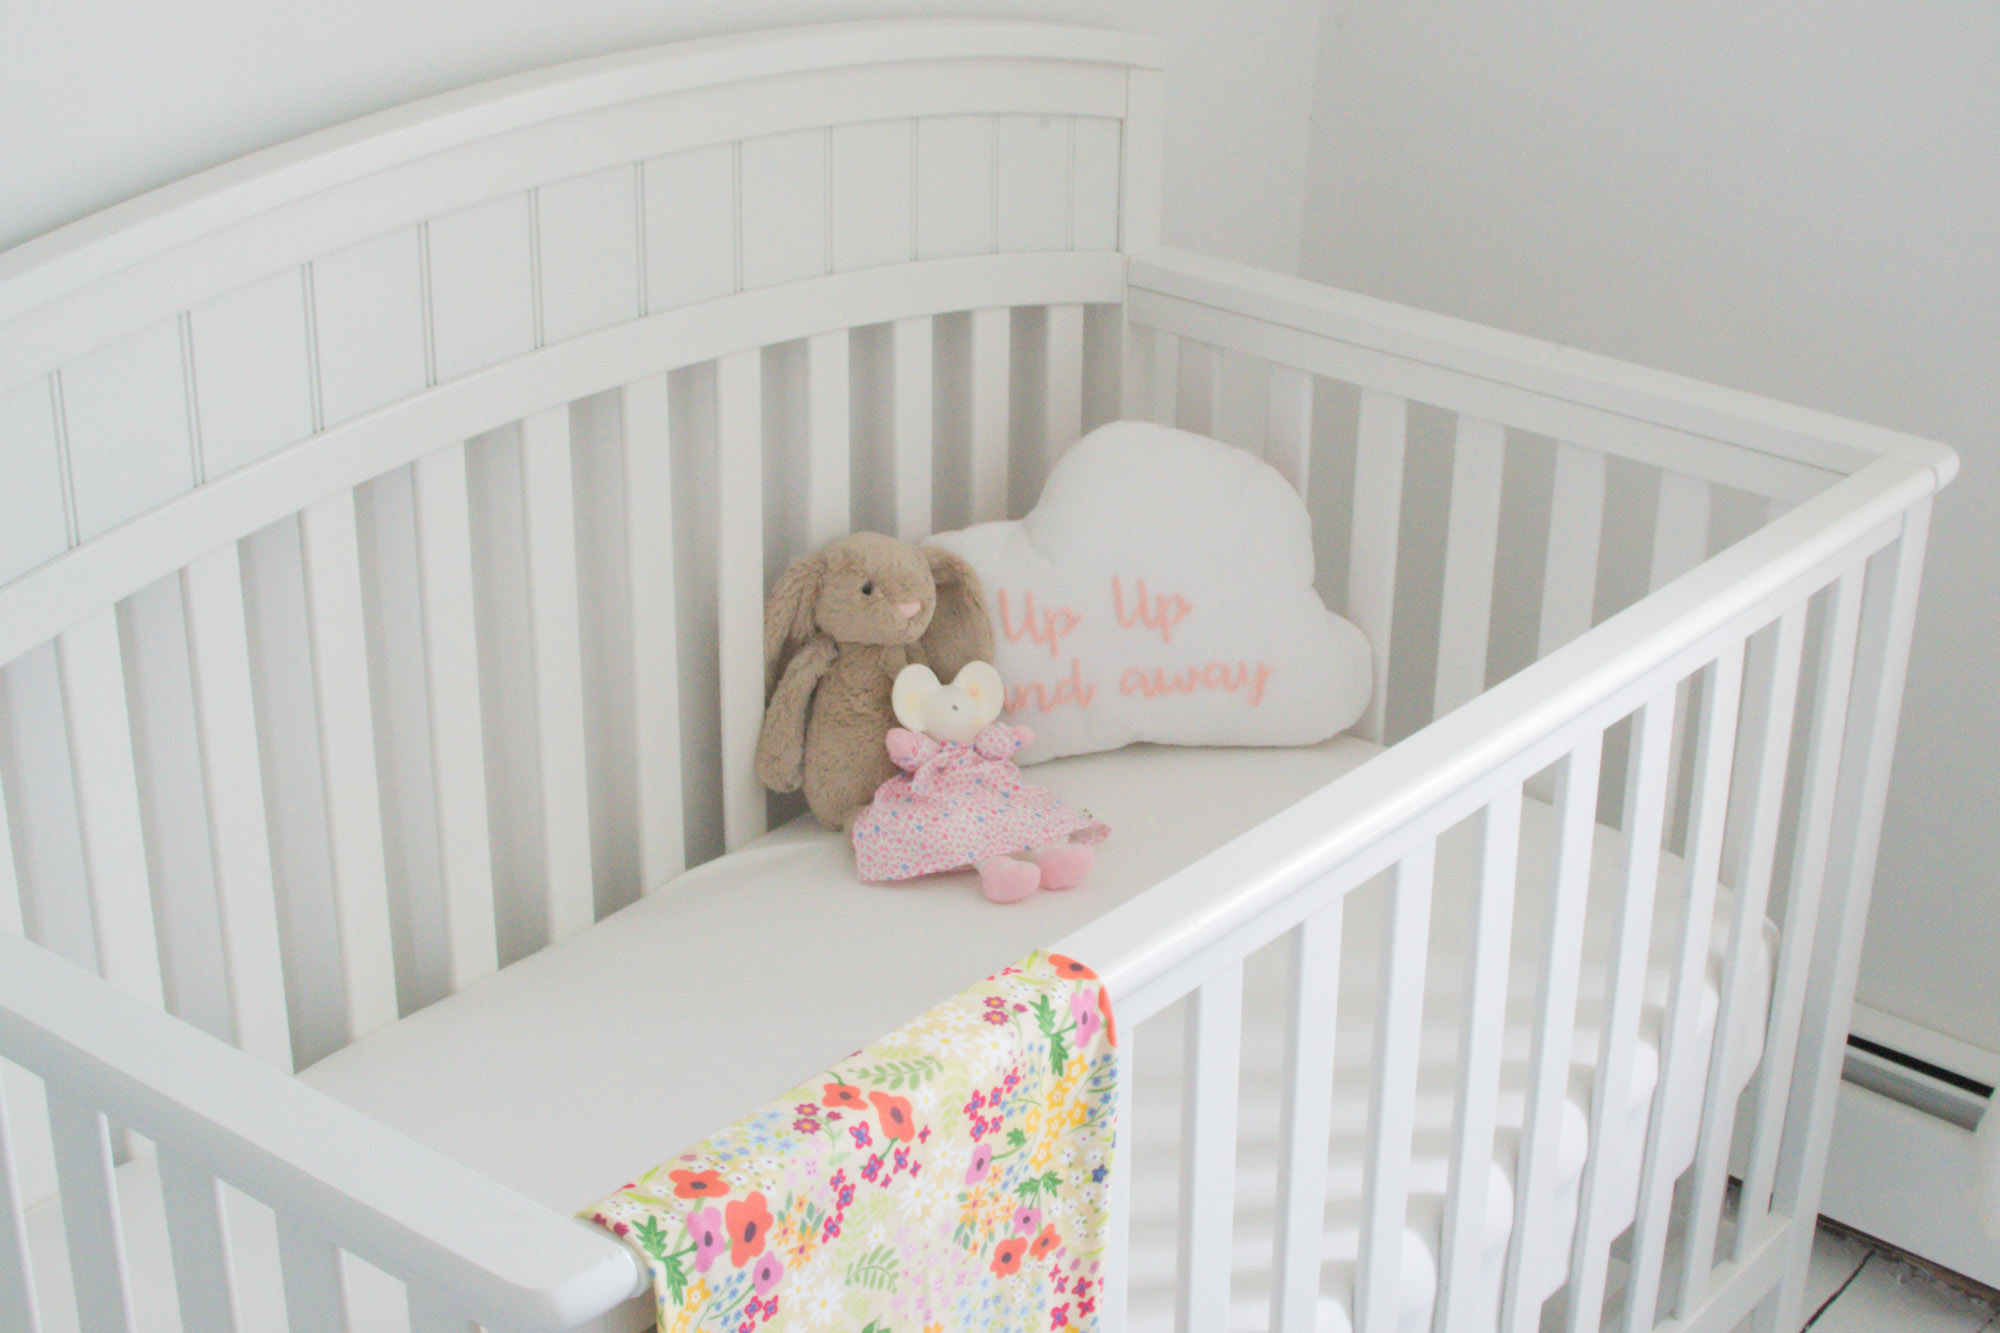 A Sneak Peek of The Baby Room With Munchkin